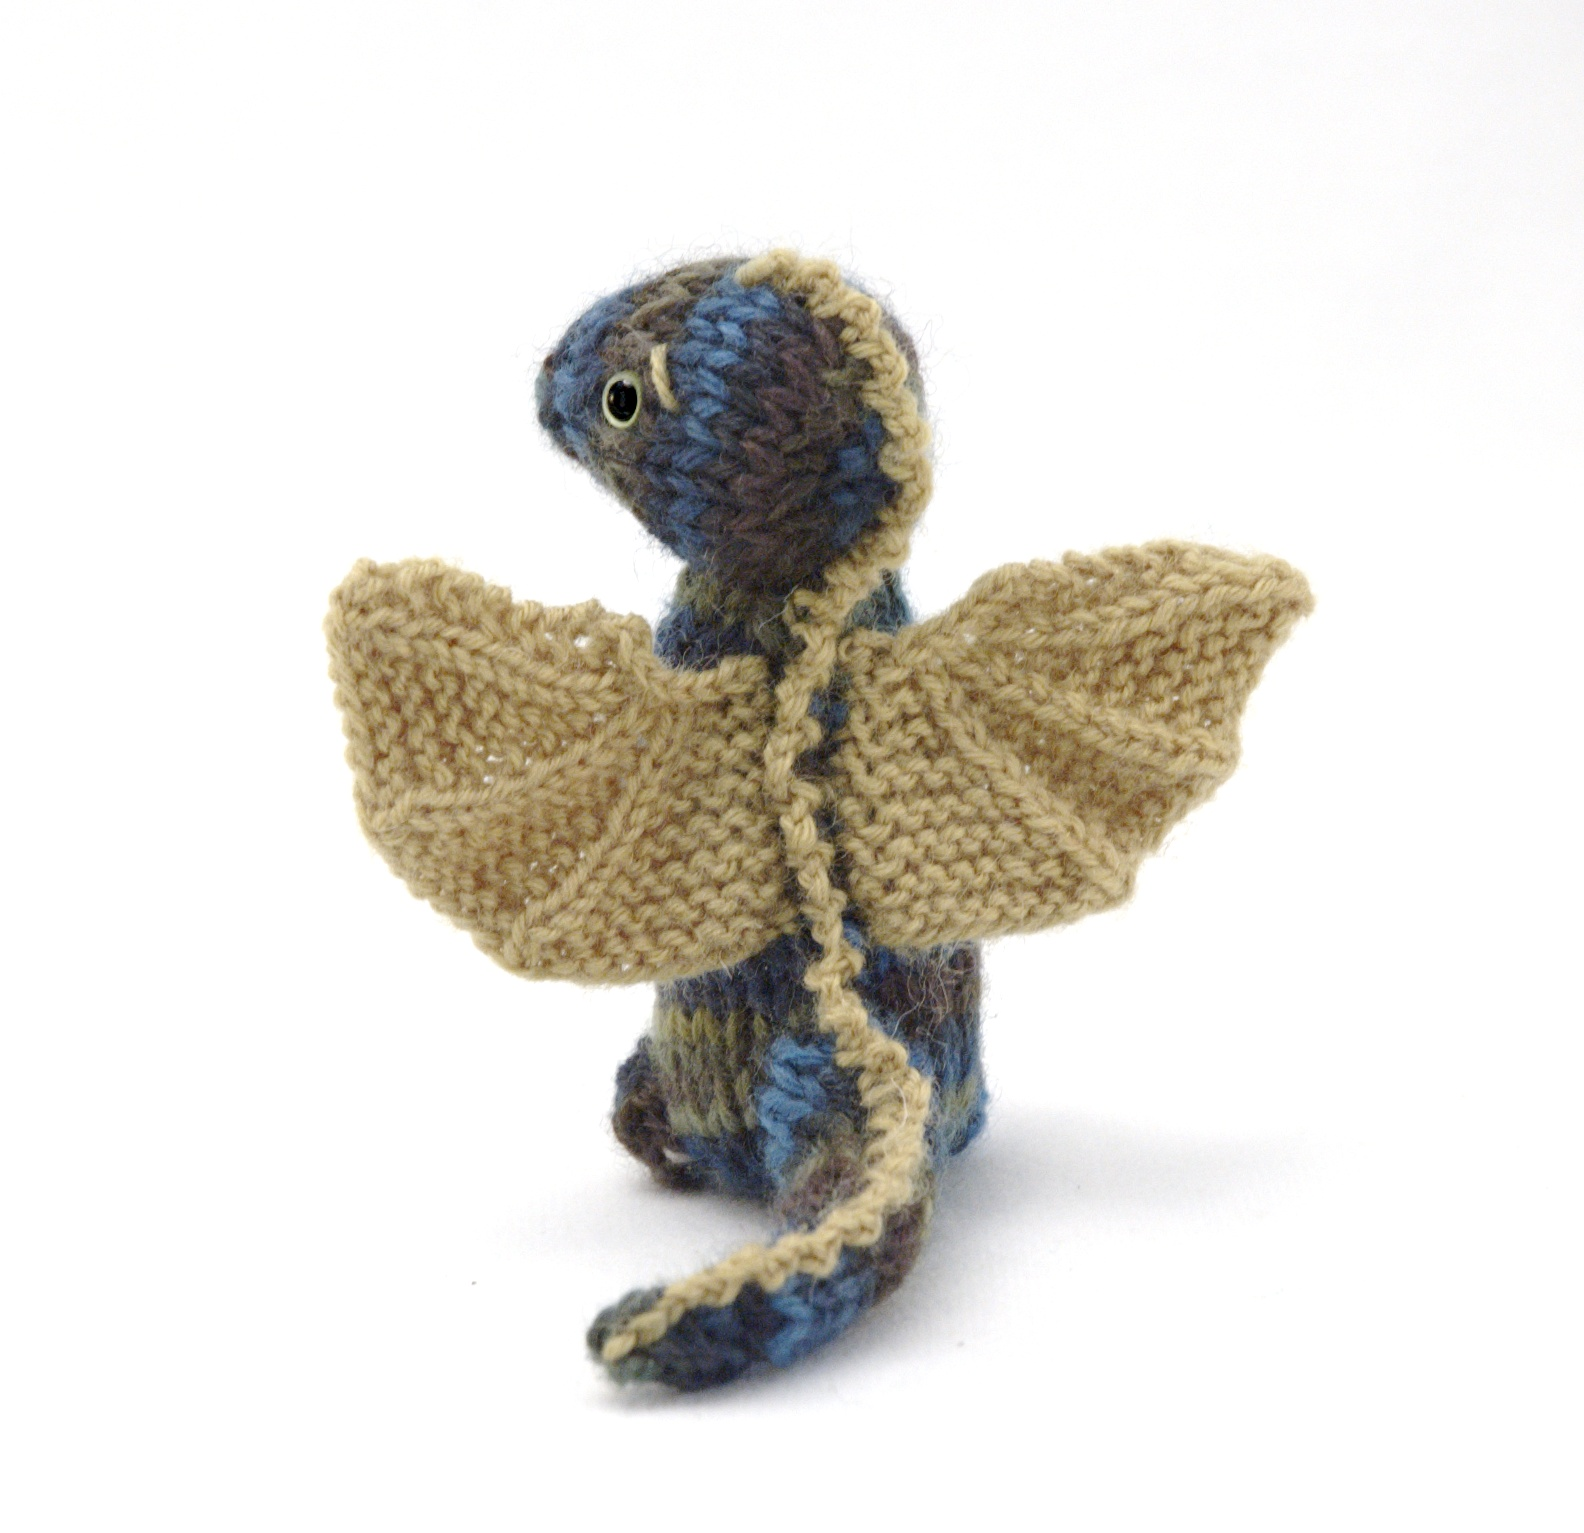 Knitting Pattern For Dragon : Fuzzy Thoughts: wee dragon